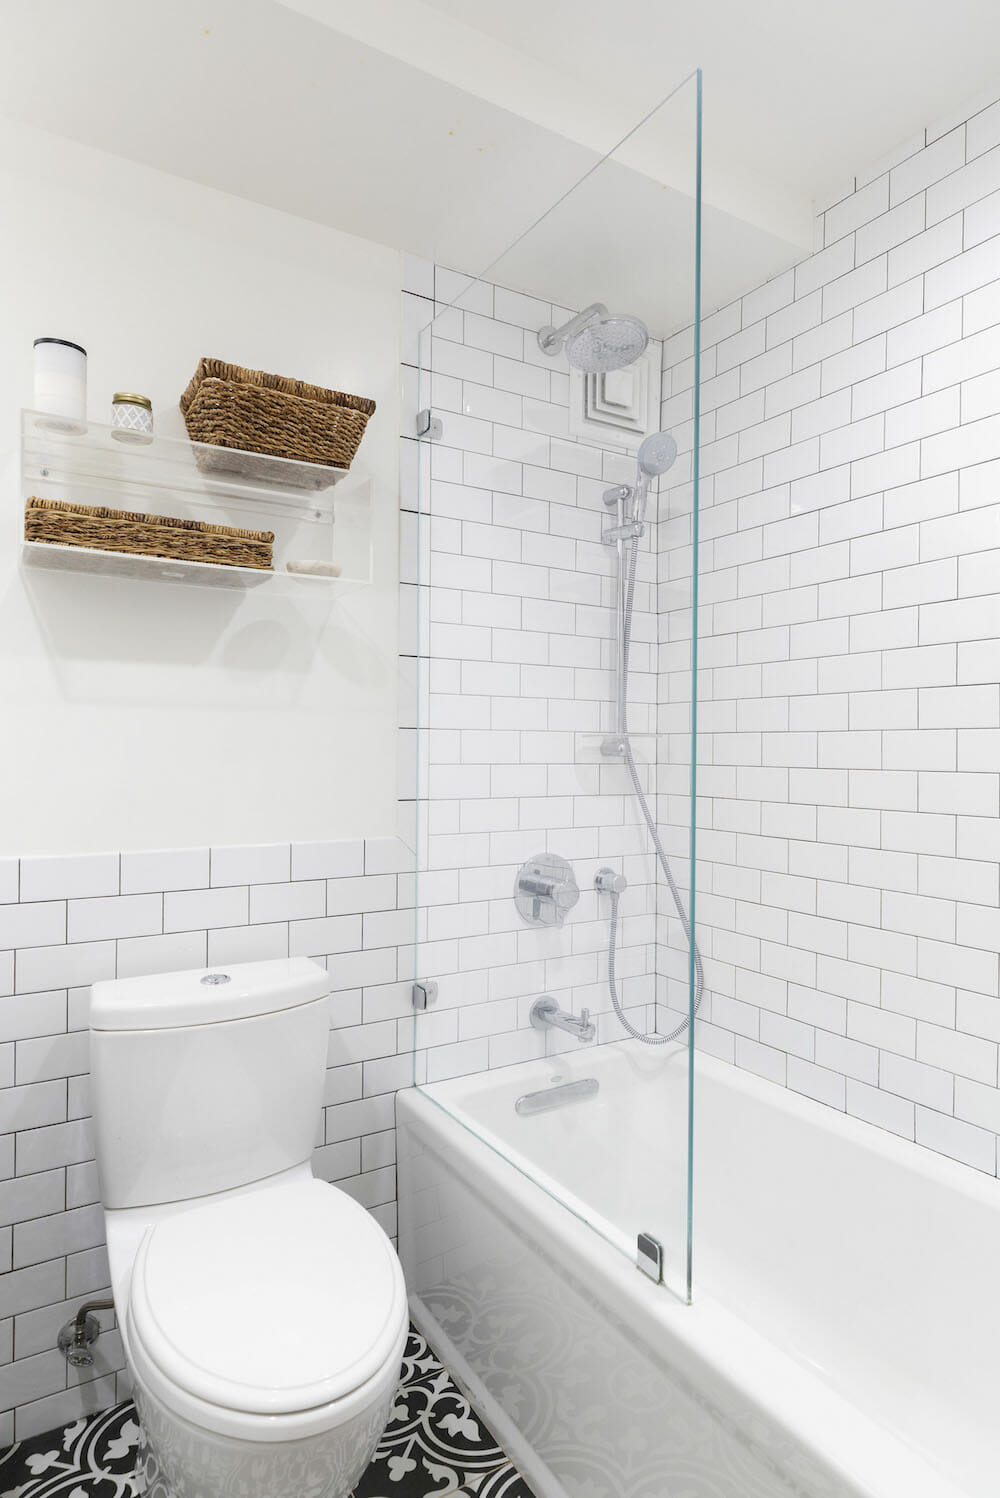 Image of a Clinton Hill bathroom with white subway tile and bathtub